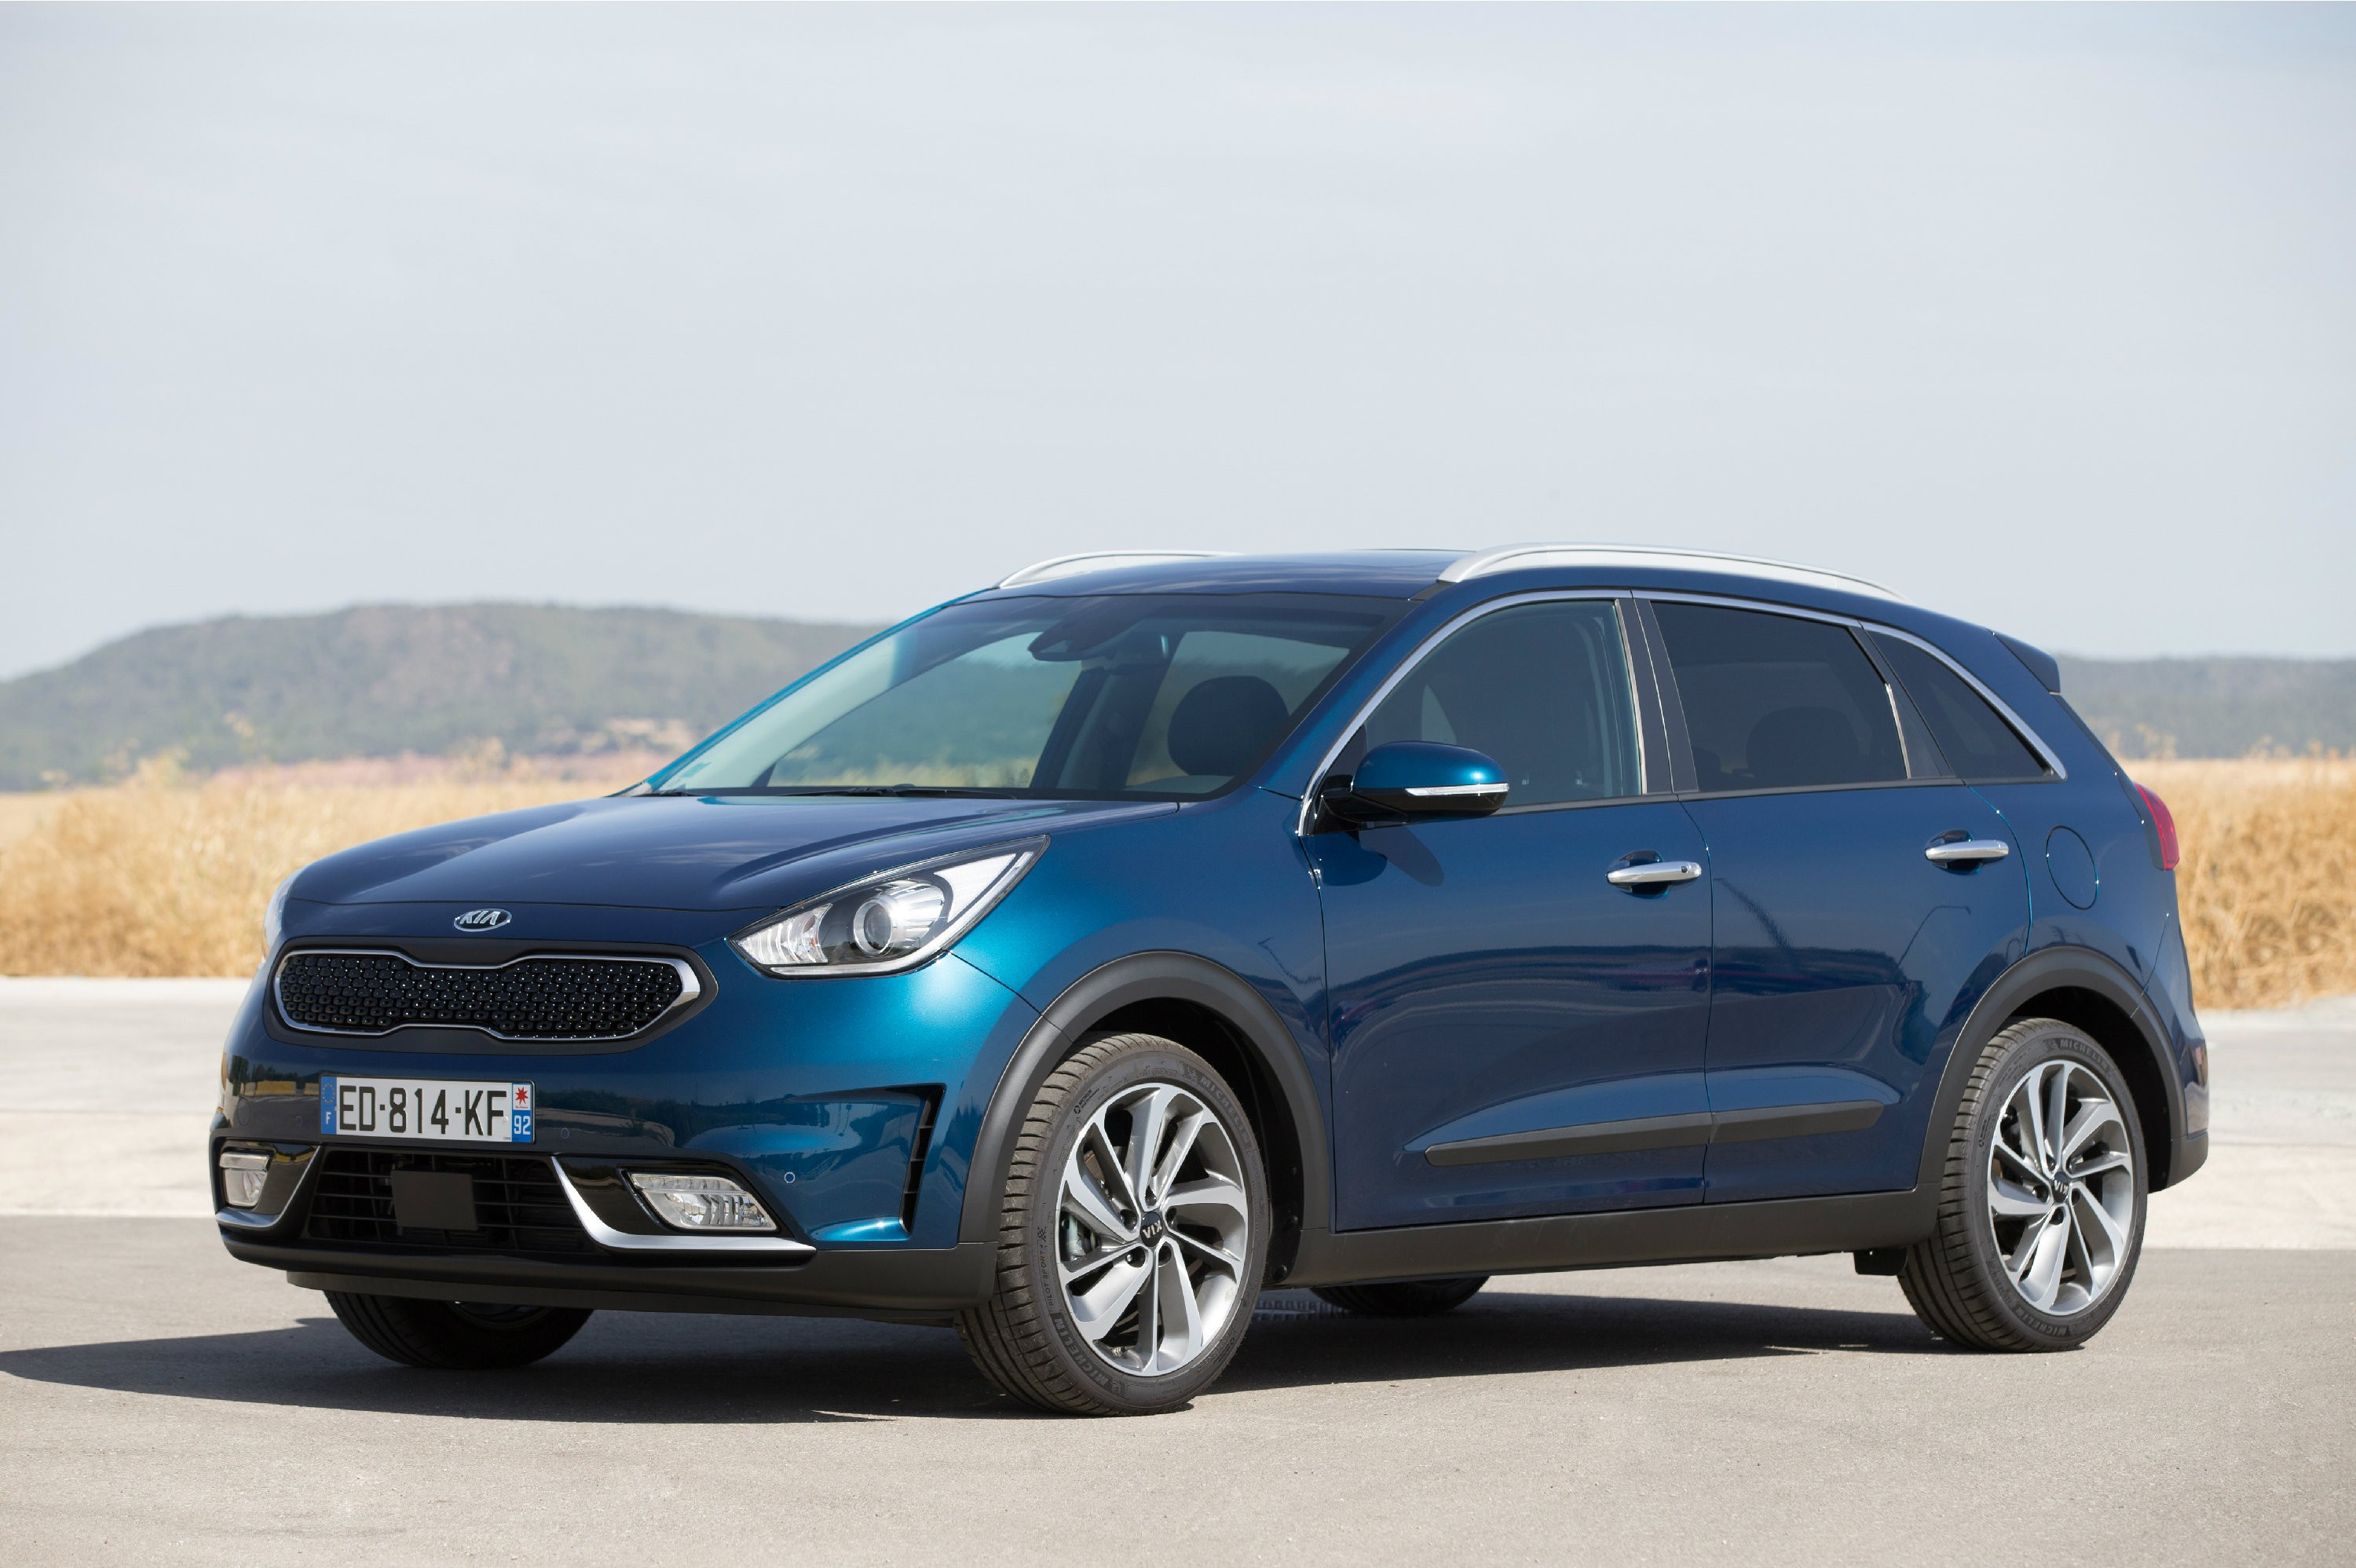 kia niro 0 to 100 km h acceleration test slightly faster. Black Bedroom Furniture Sets. Home Design Ideas